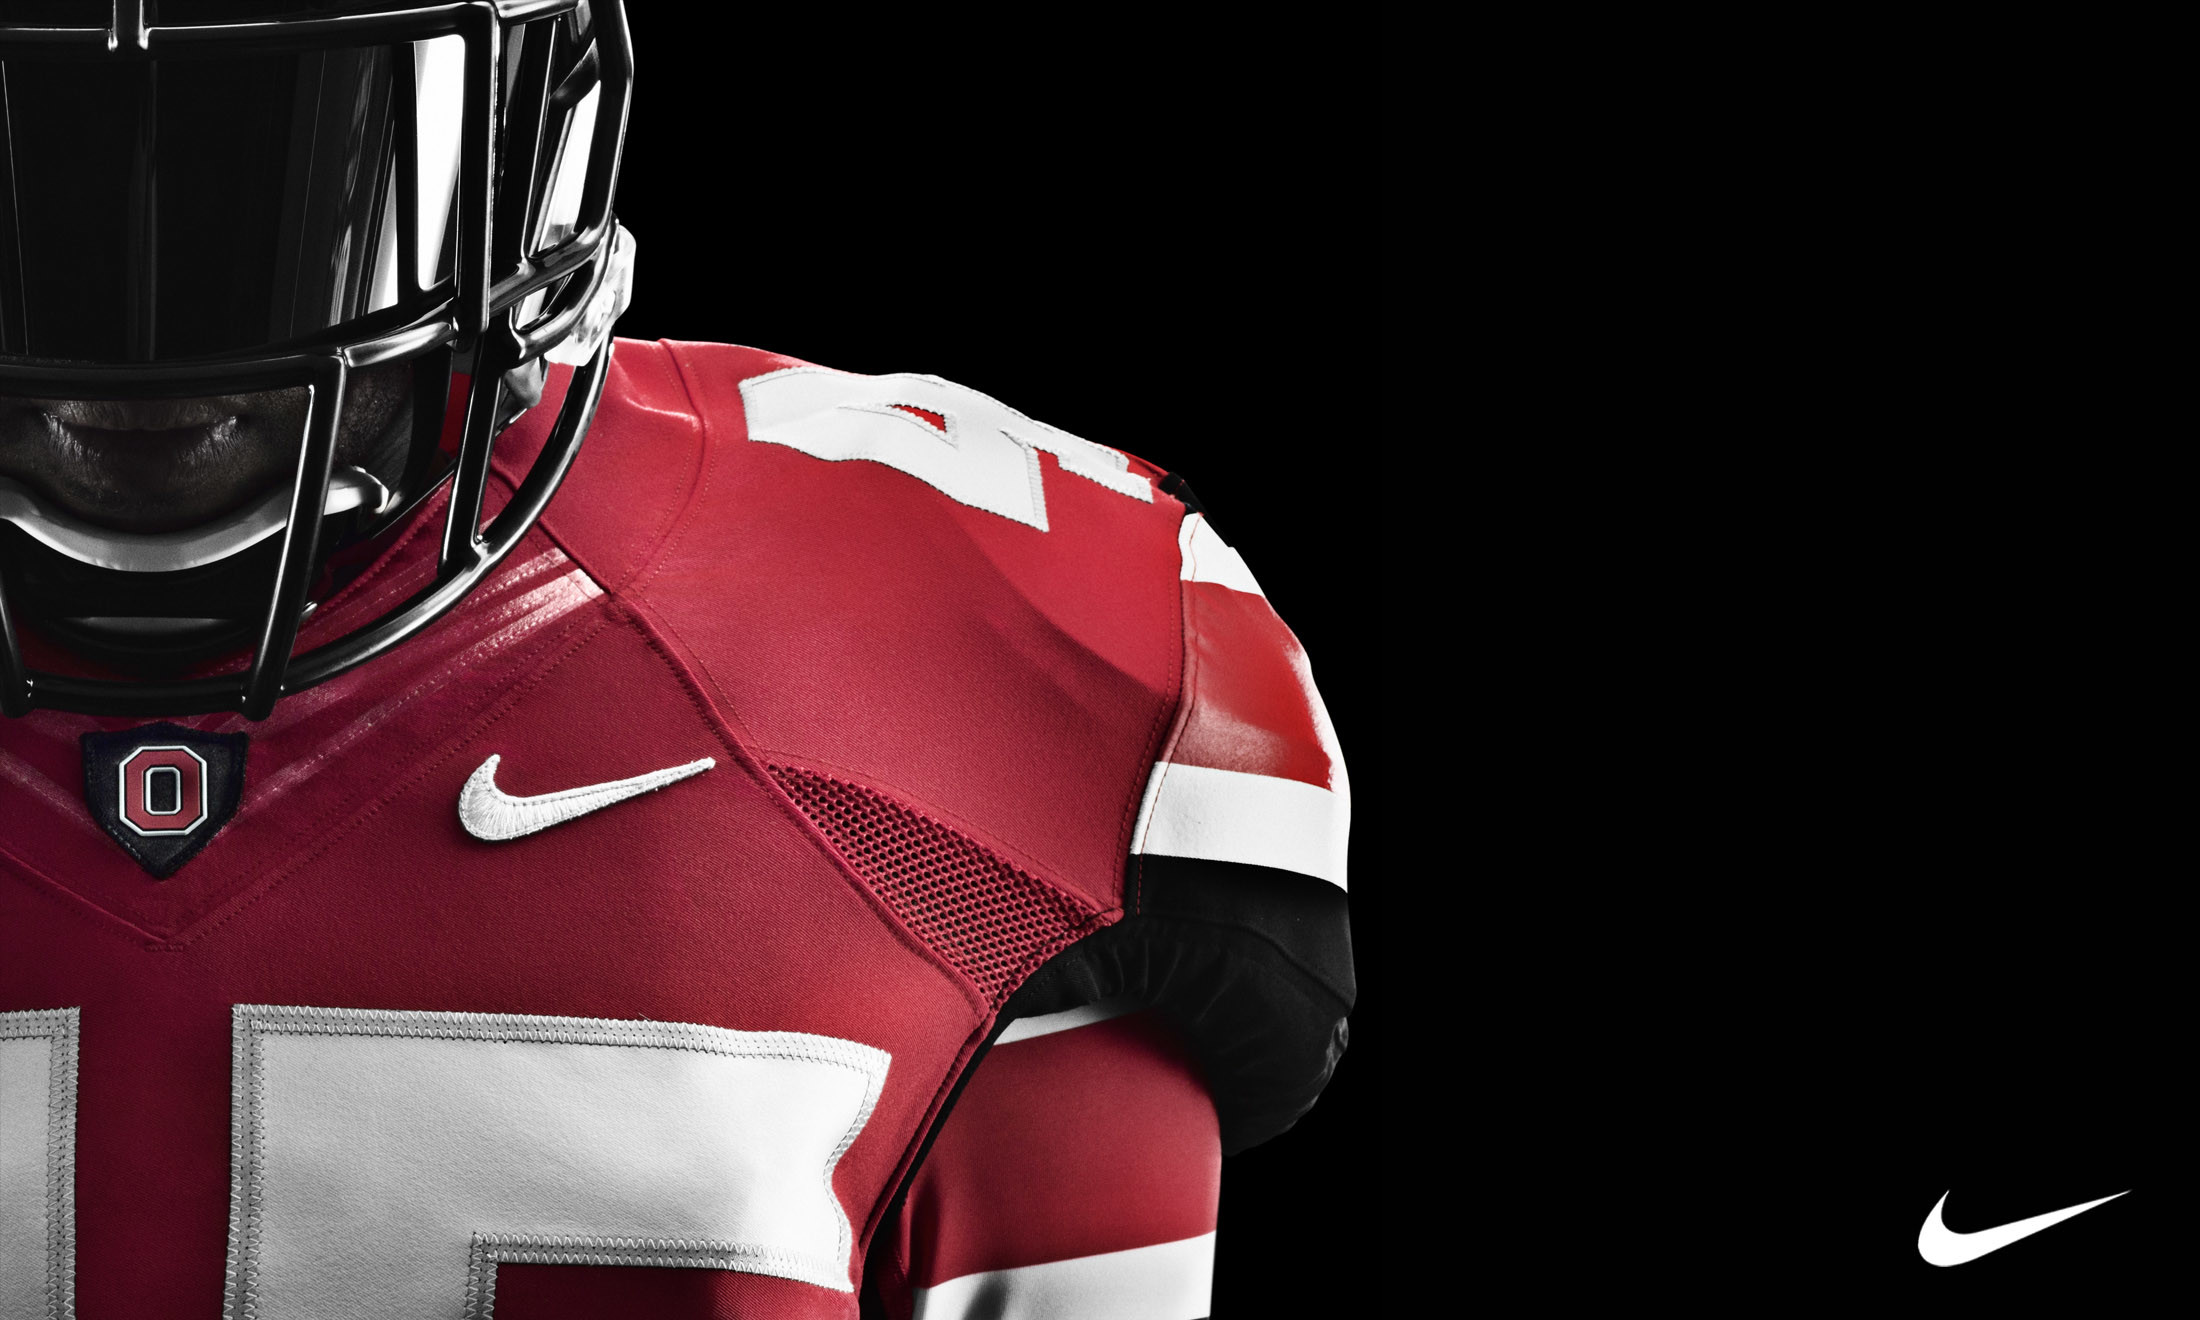 Hd Wallpapers Ohio State Uniforms